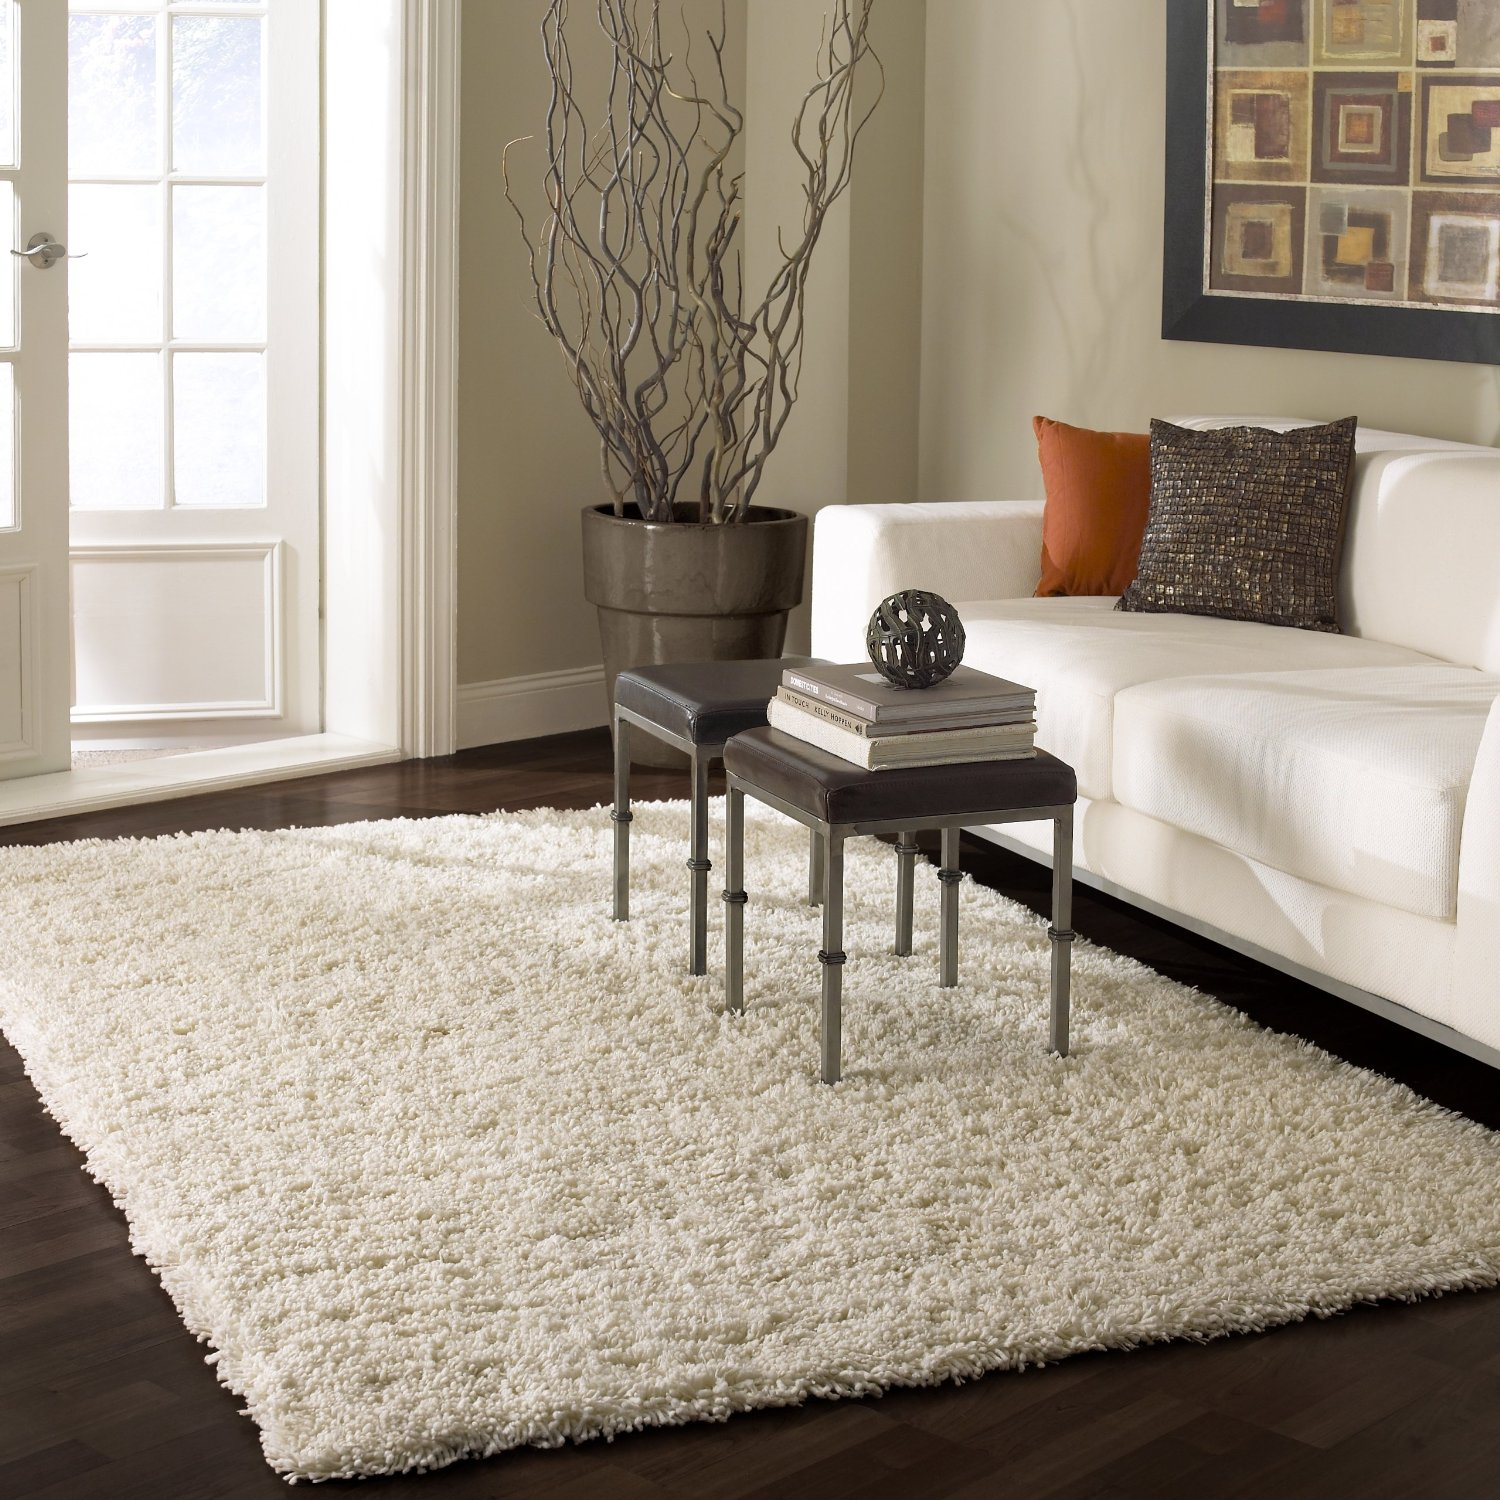 Beautiful living room rug minimalist ideas midcityeast for Rug in bedroom